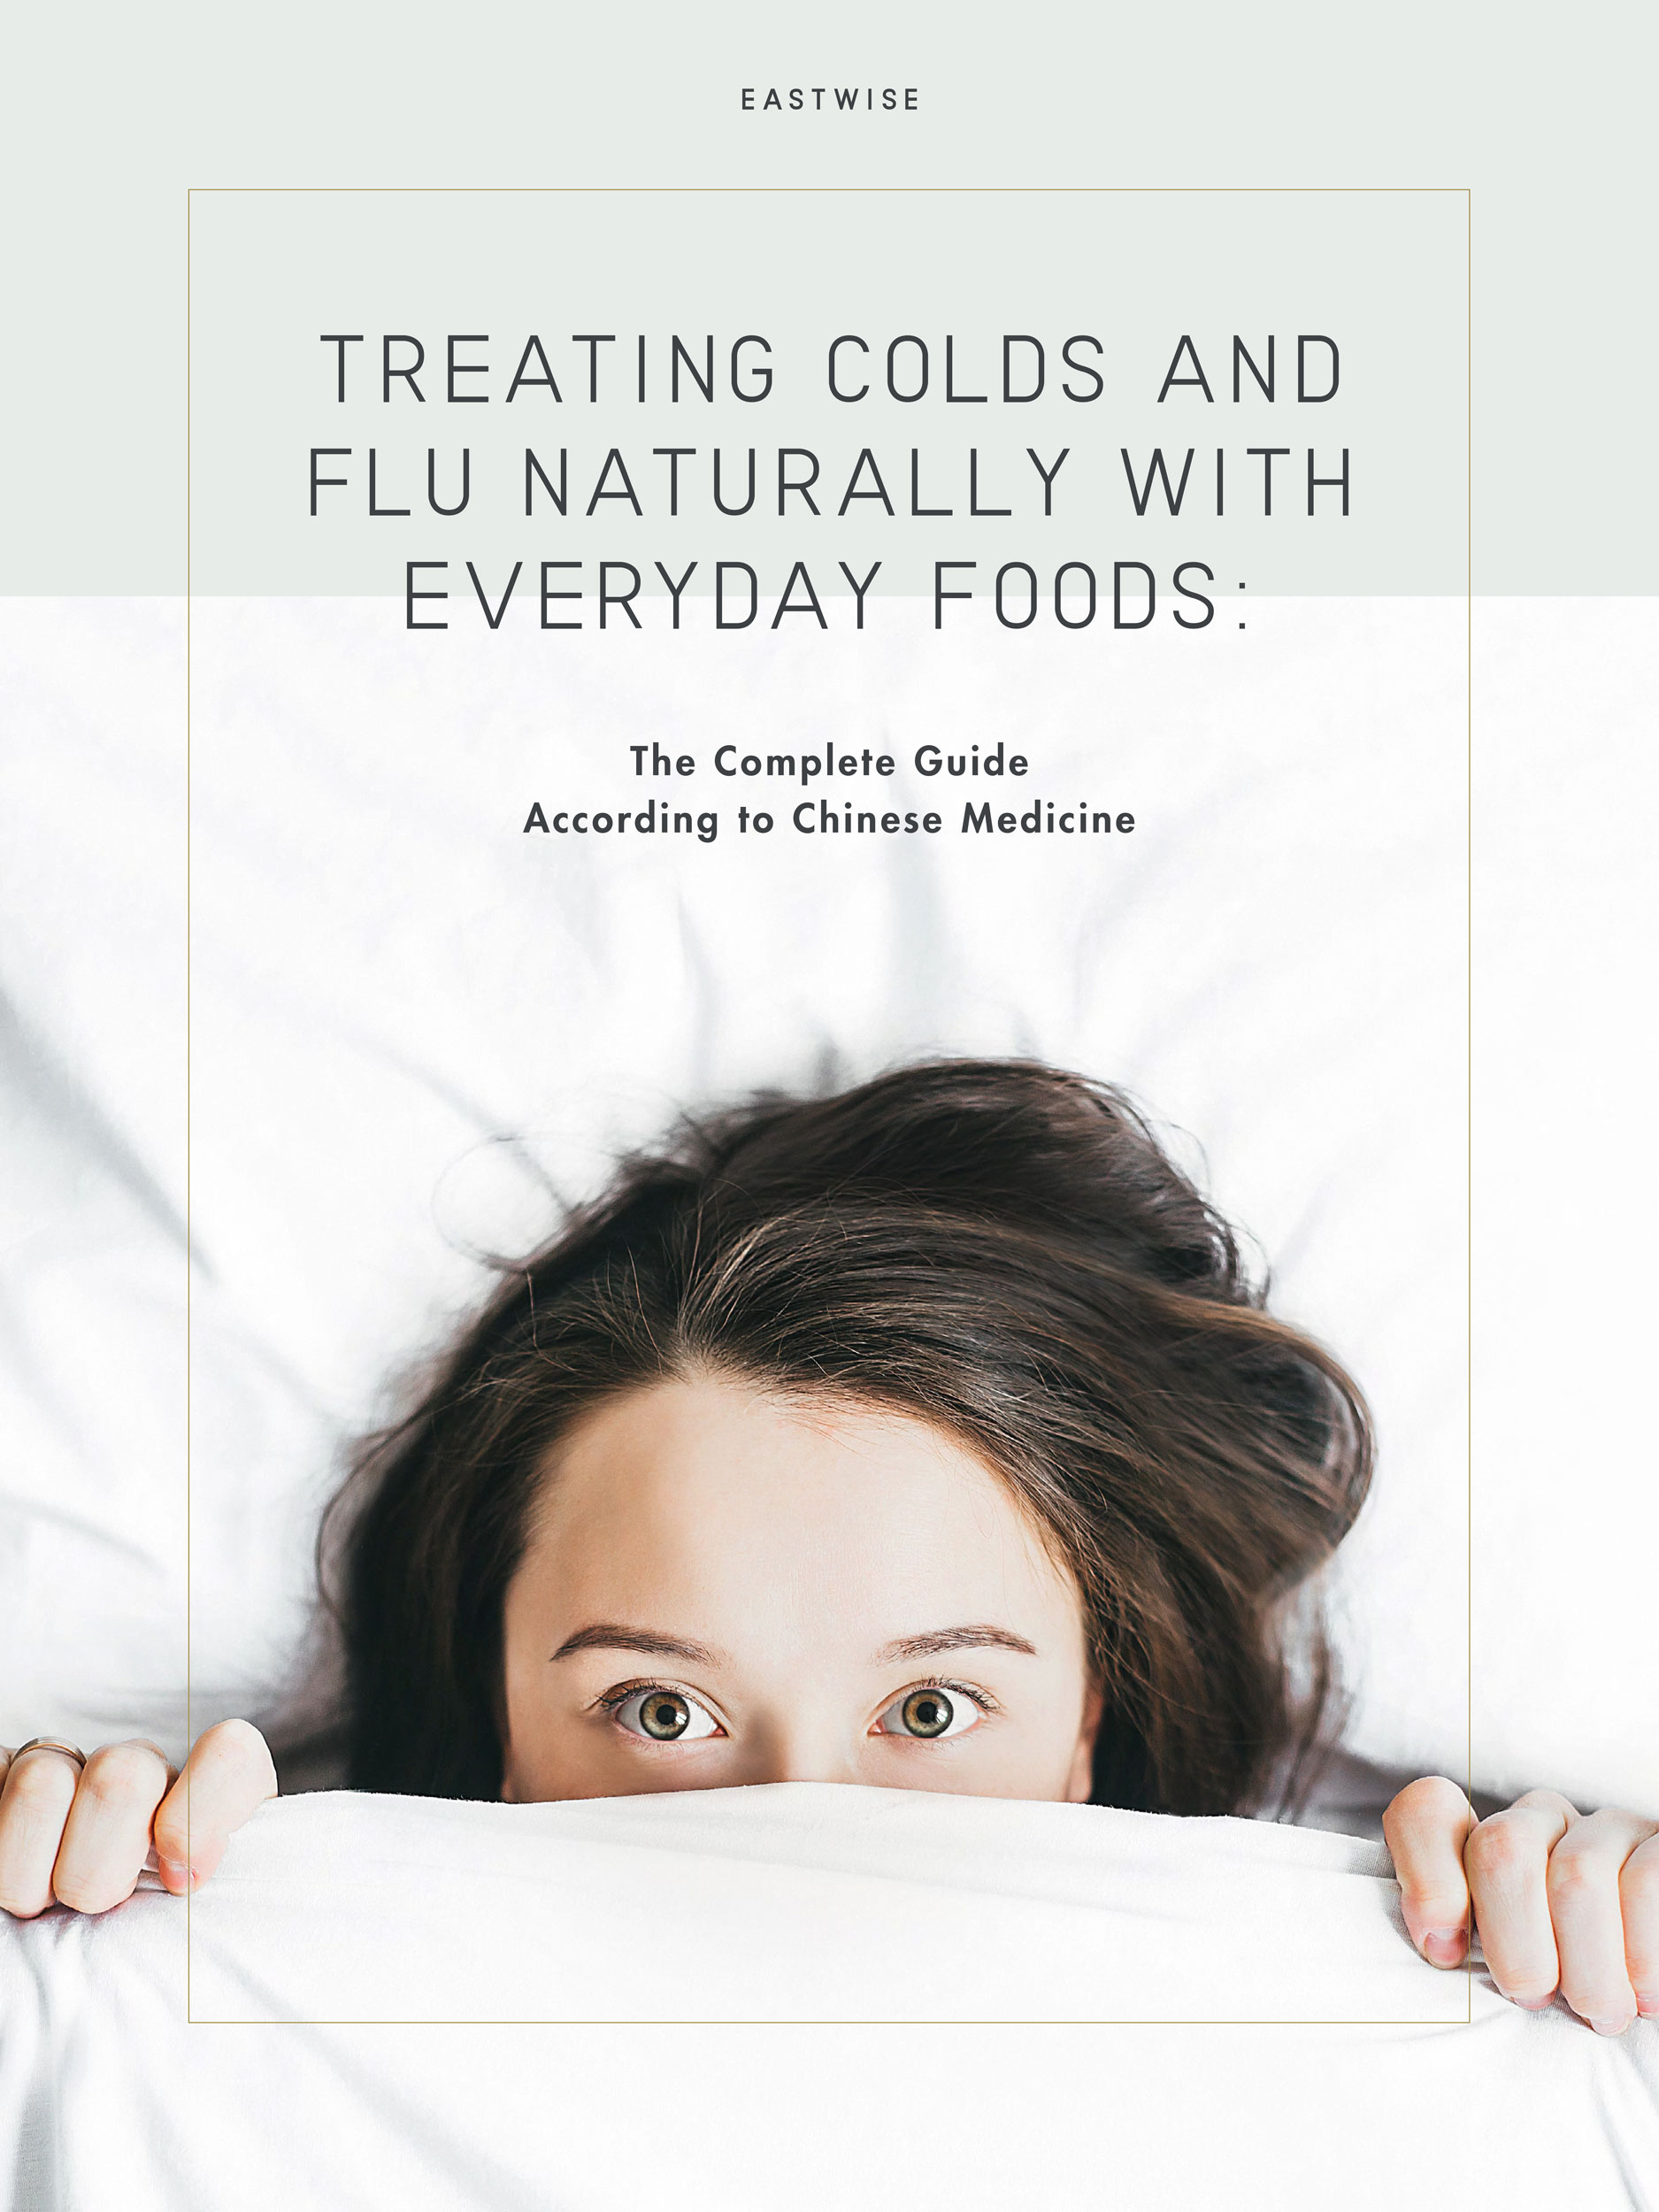 Eastwise-Treating-Colds-and-Flu-Naturally-with-Everyday-Foods---The-Complete-Guide-According-to-Chinese-Medicine-Cover.jpg